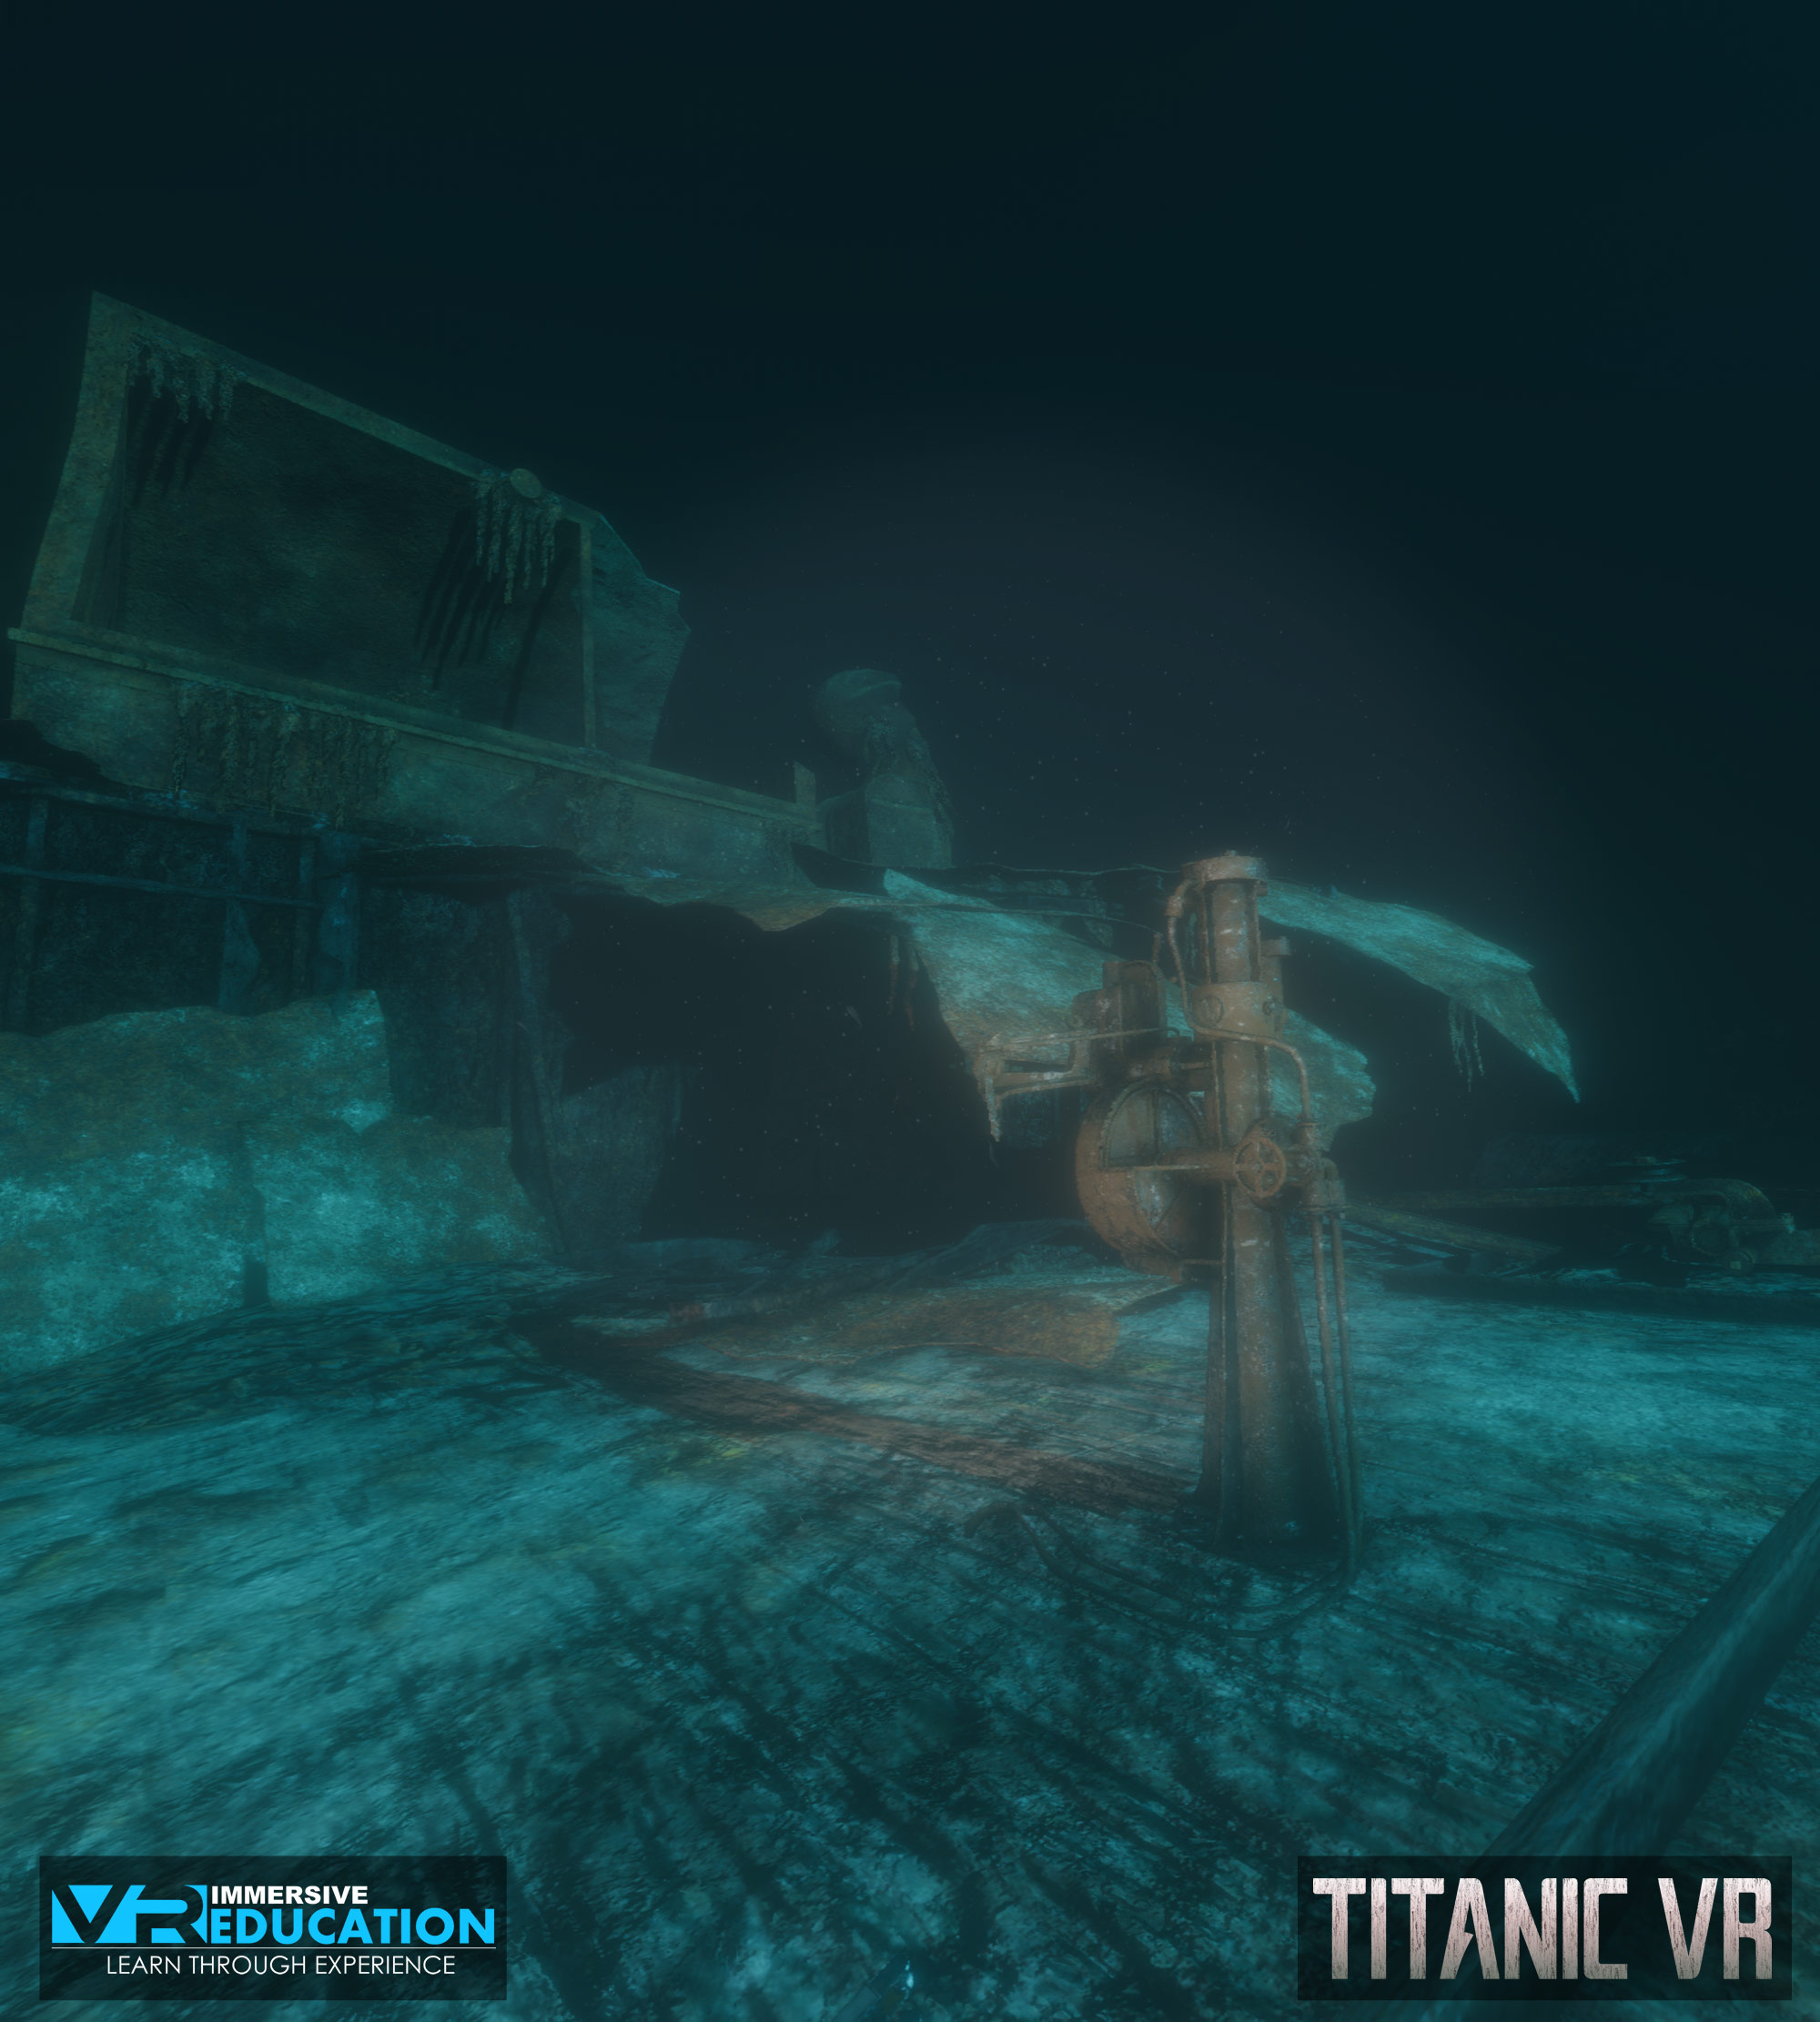 Titanic 2: 'Titanic VR' Dives Deep Into The History Of The Fateful